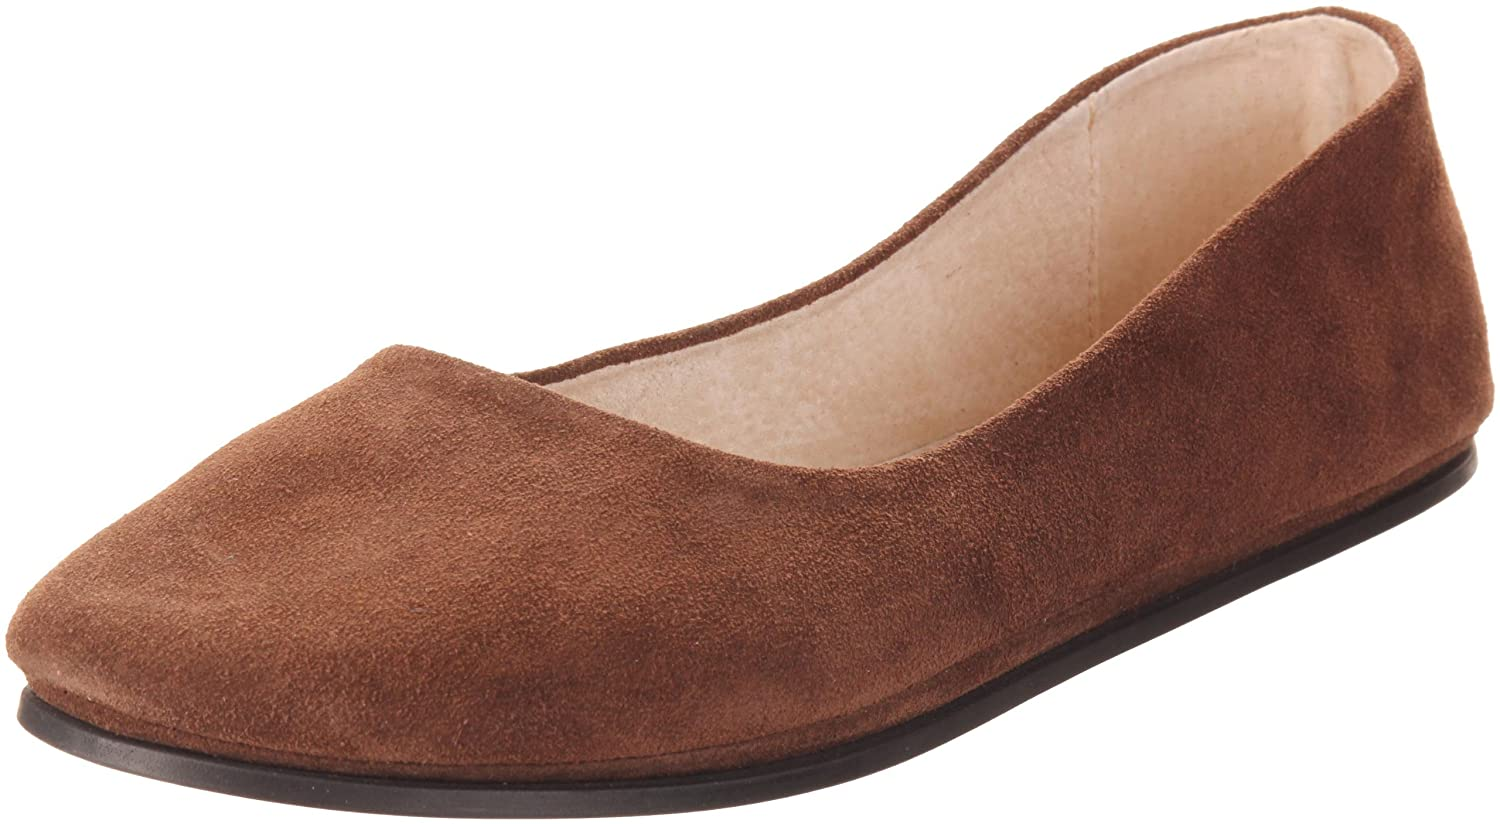 French Sole FS/NY Women's Sloop Ballet Flat B0012EYEZK 7.5 B(M) US|Chocolate Suede